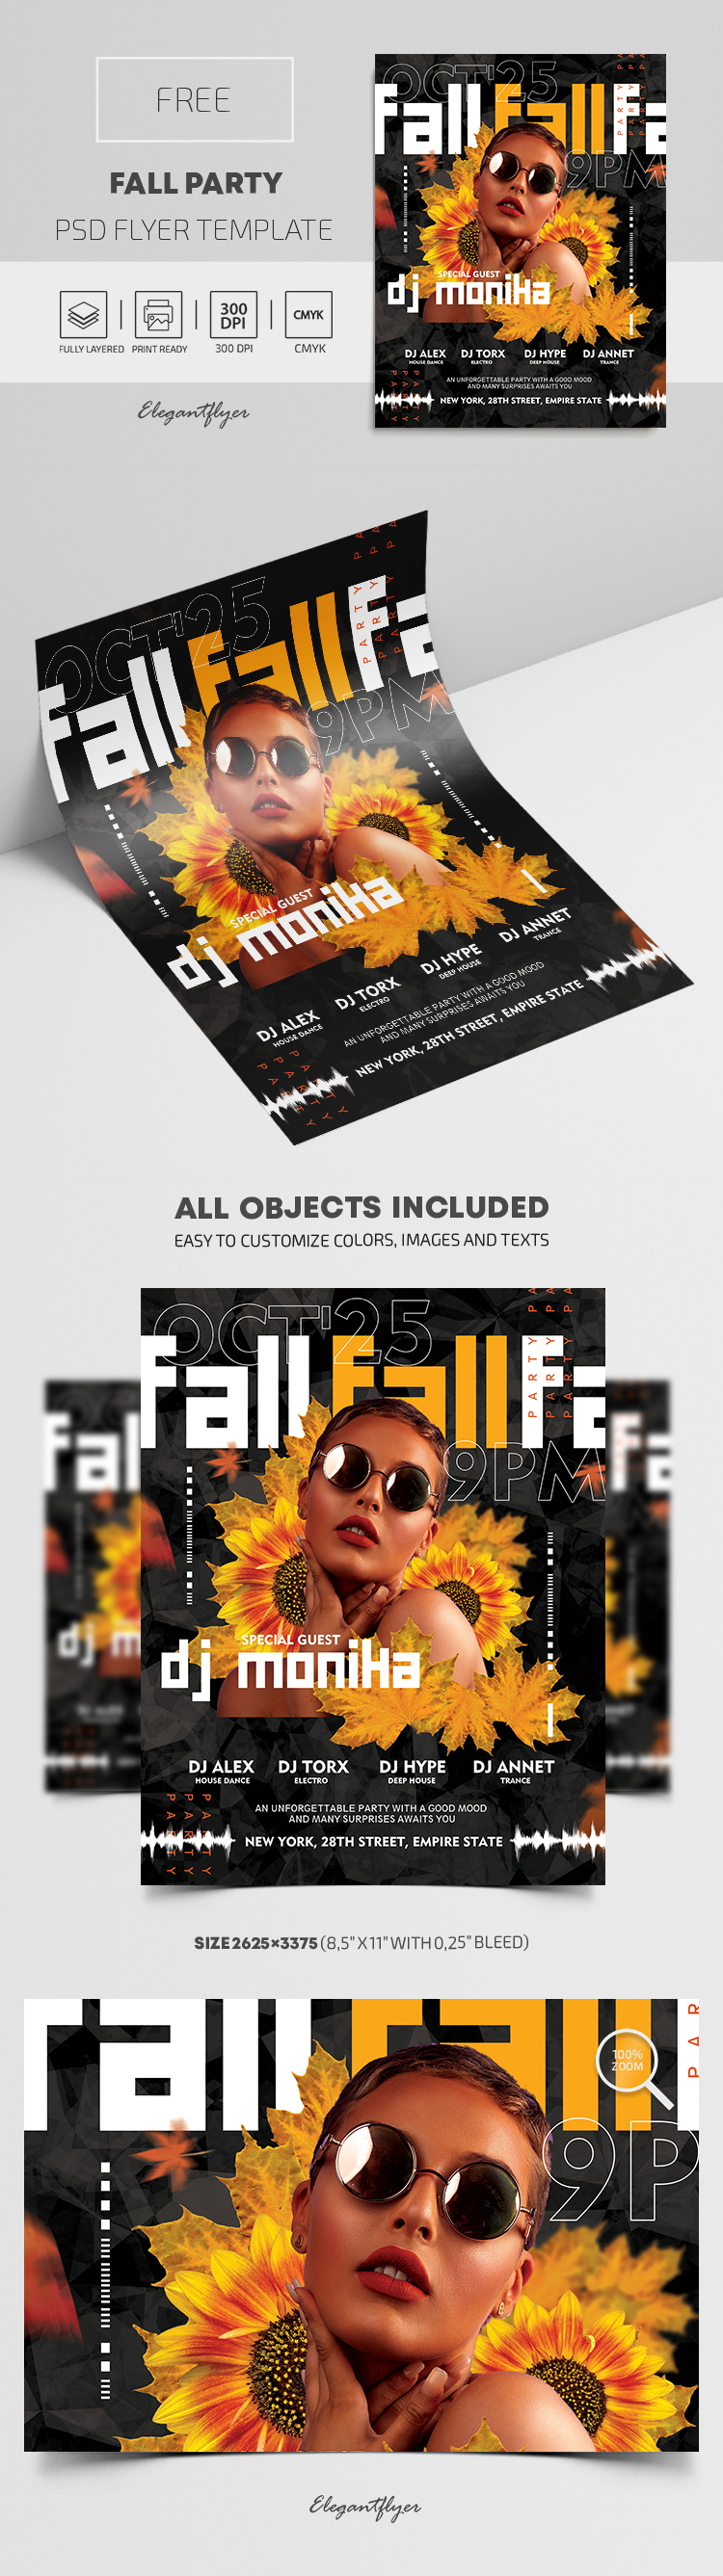 Fall Party – Free Flyer PSD Template